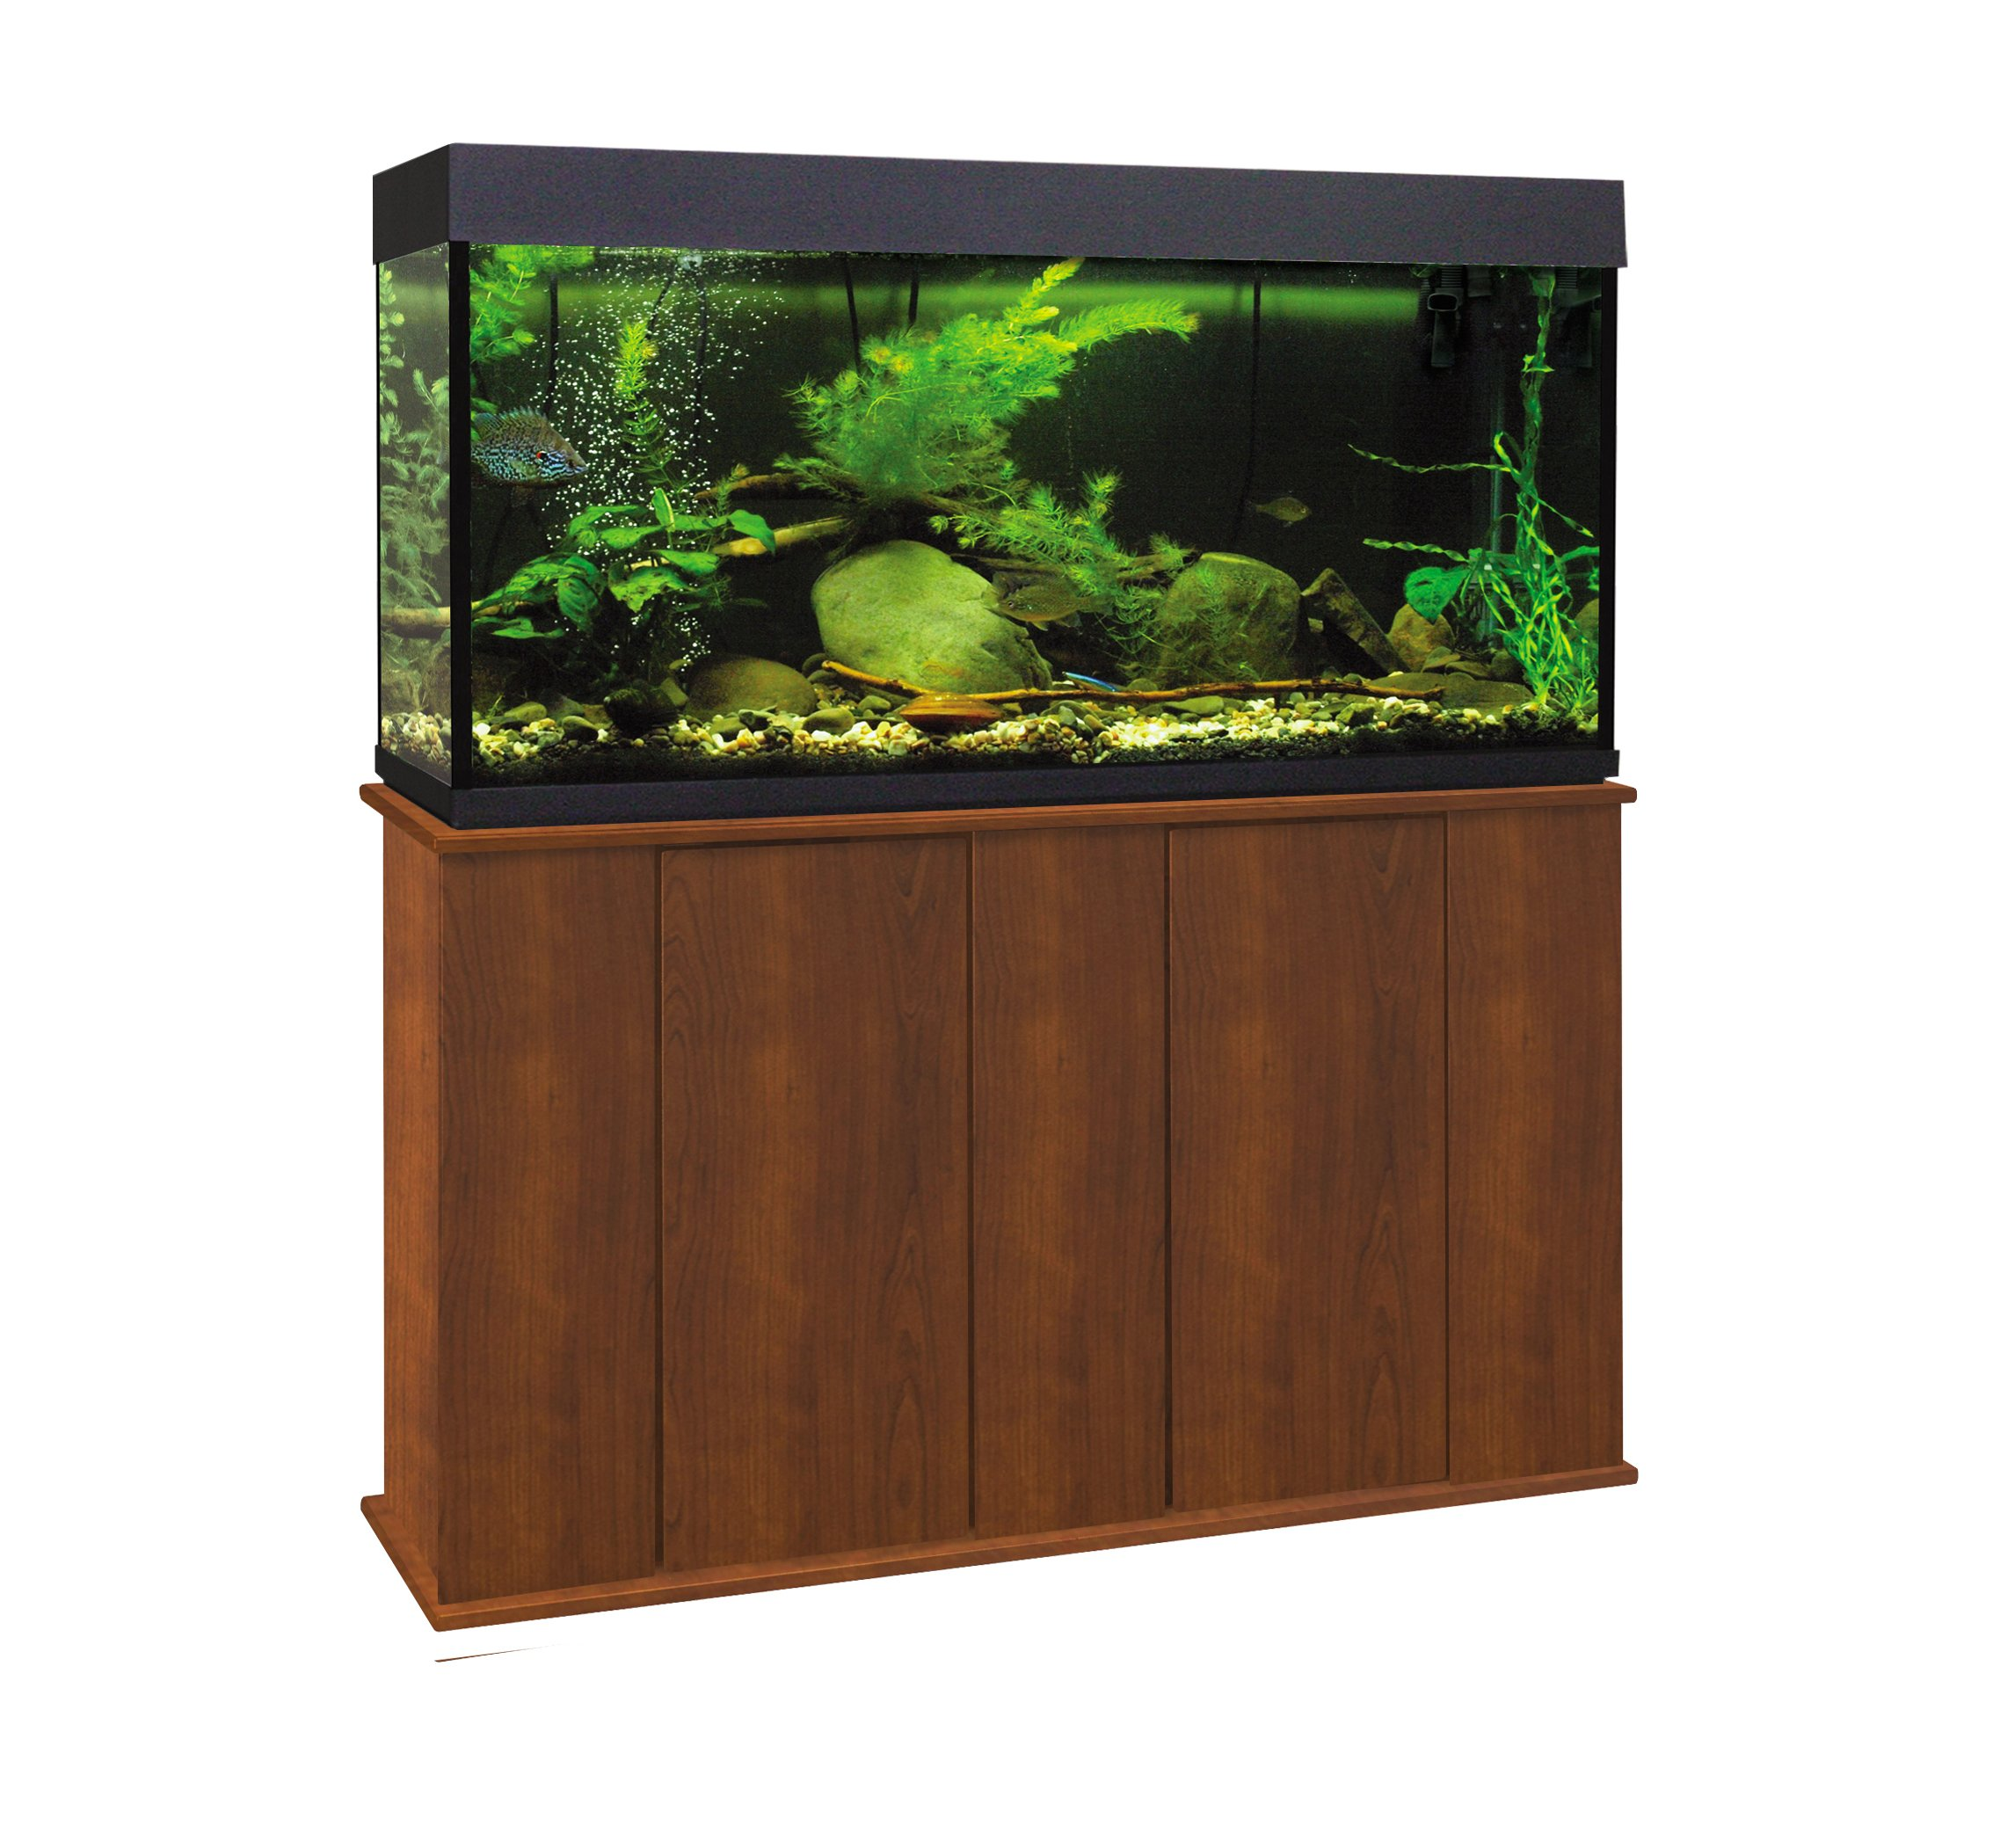 Aquatic Fundamentals 36551-68-AMZ 55 Gallon Upright Aquarium Stand, Serene Cherry